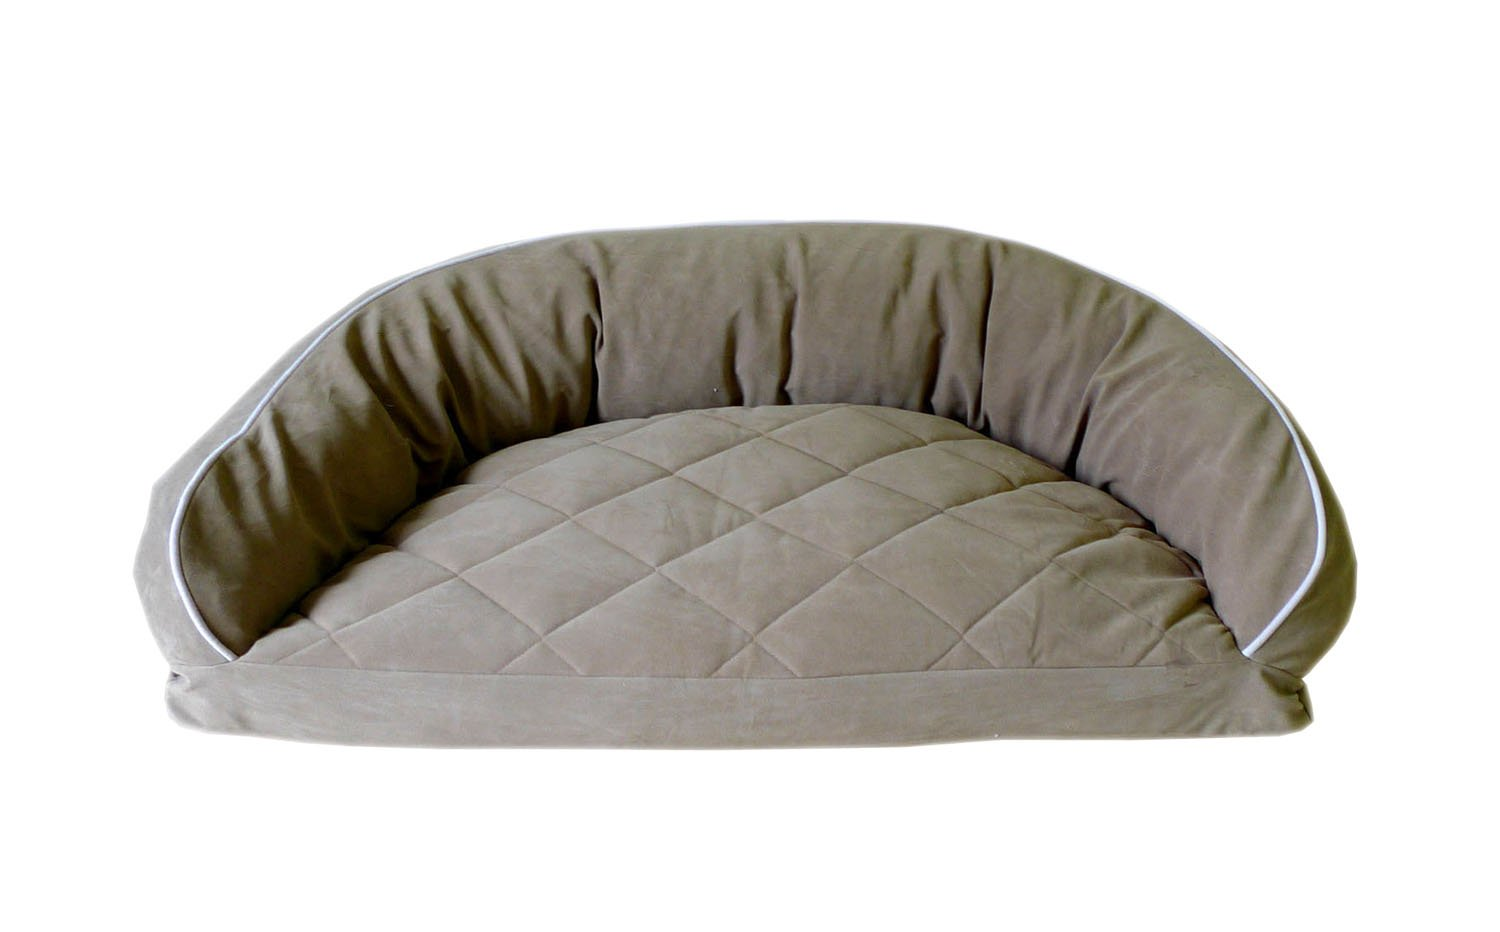 CPC Diamond Quilted Semi Circle Sage Lounge for Dogs and Cats with Linen Piping 35 x 23 x 12-inch